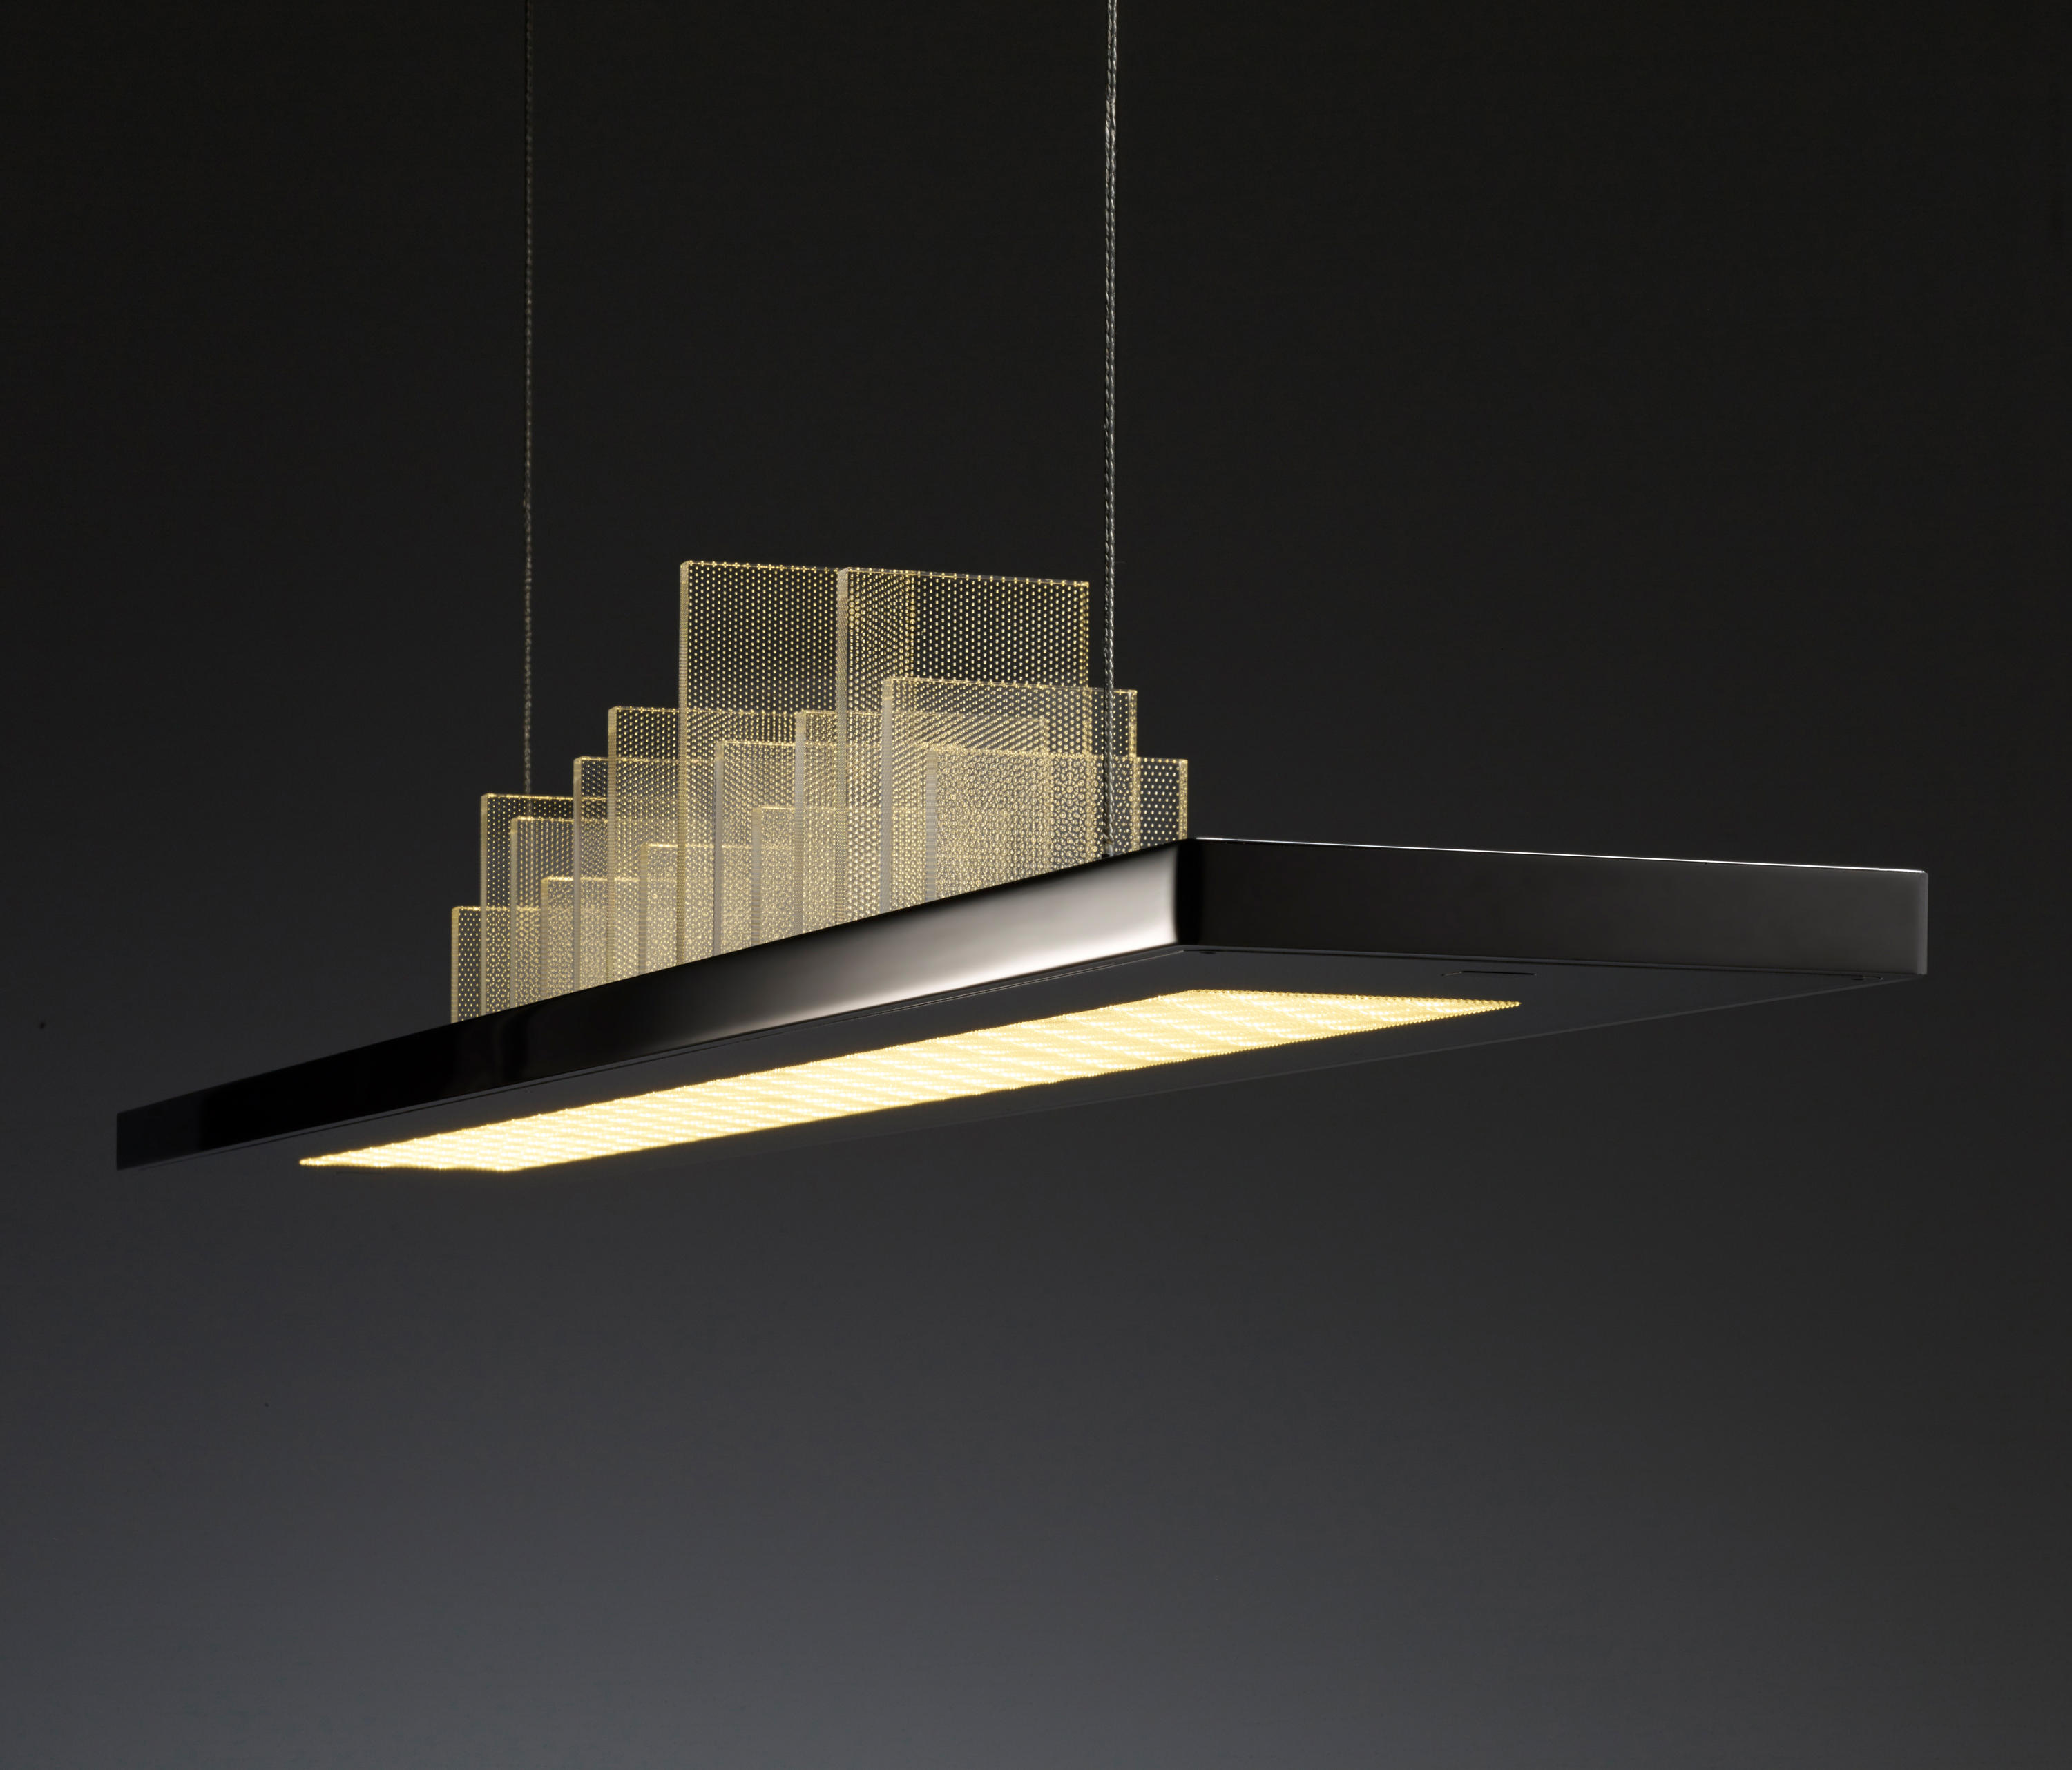 Palo pendant luminaire suspended lights from oligo architonic palo pendant luminaire by oligo aloadofball Gallery